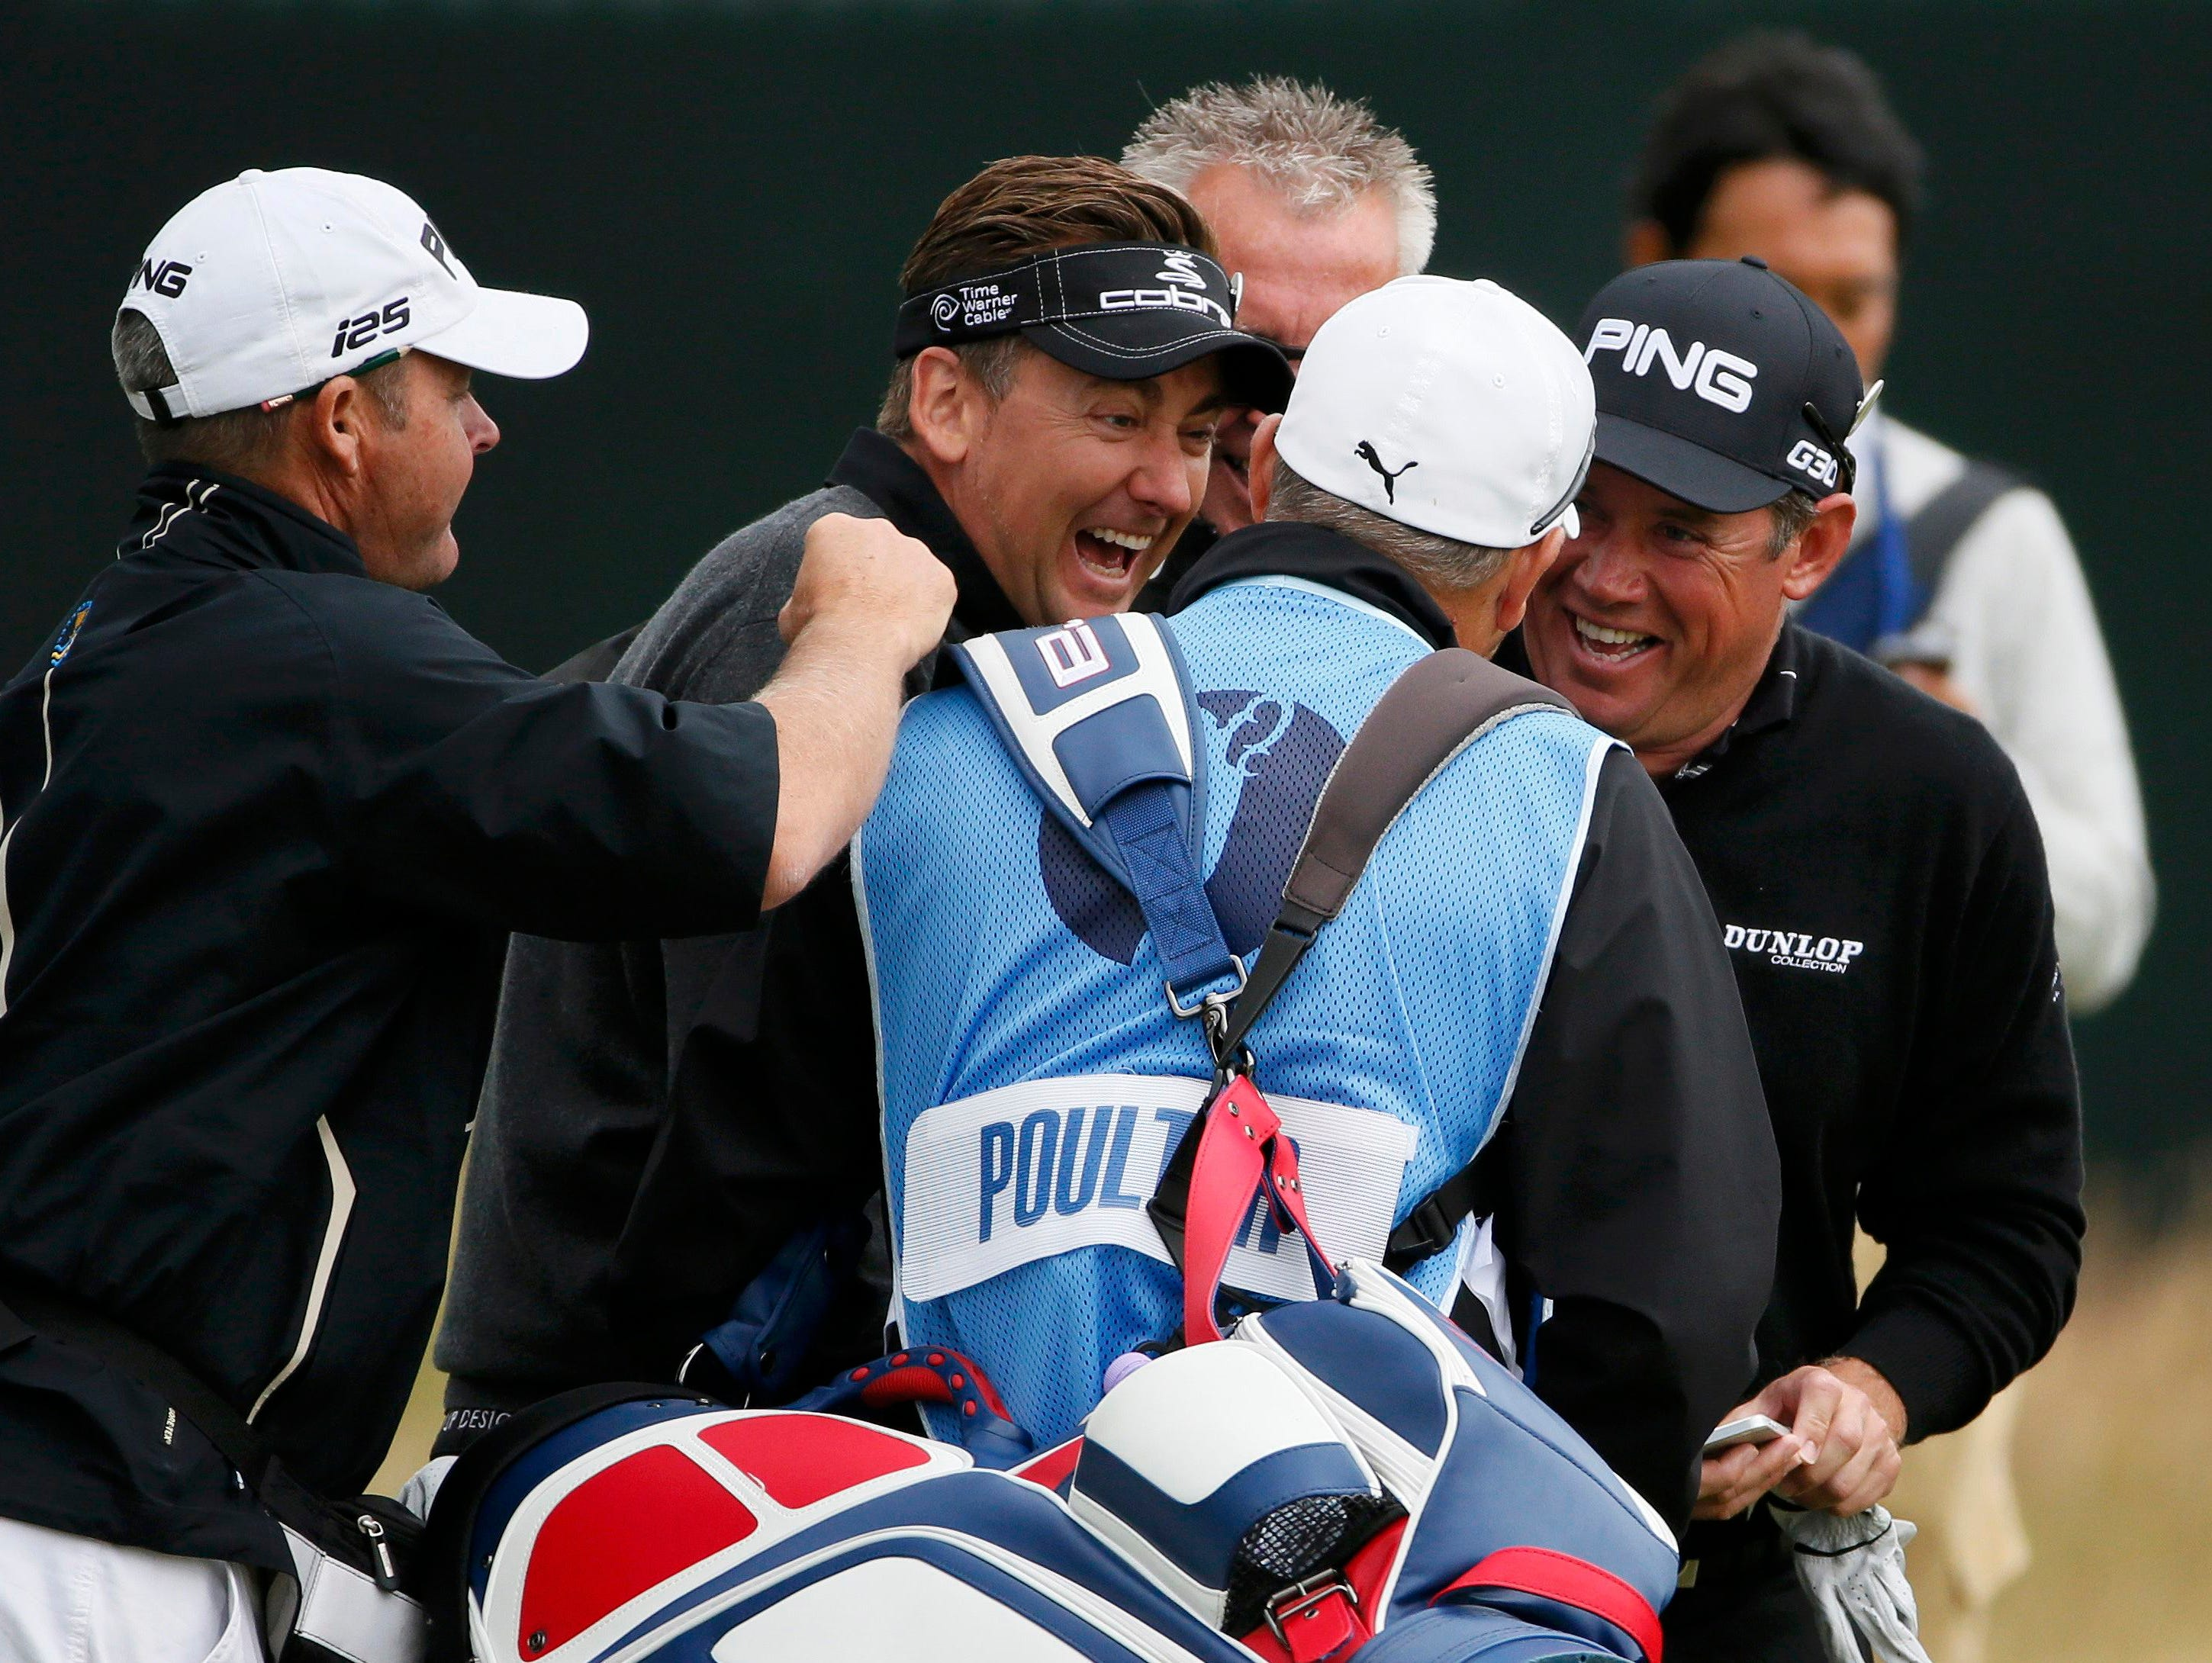 phil mickelson returns claret jug with hopes of reclaiming it